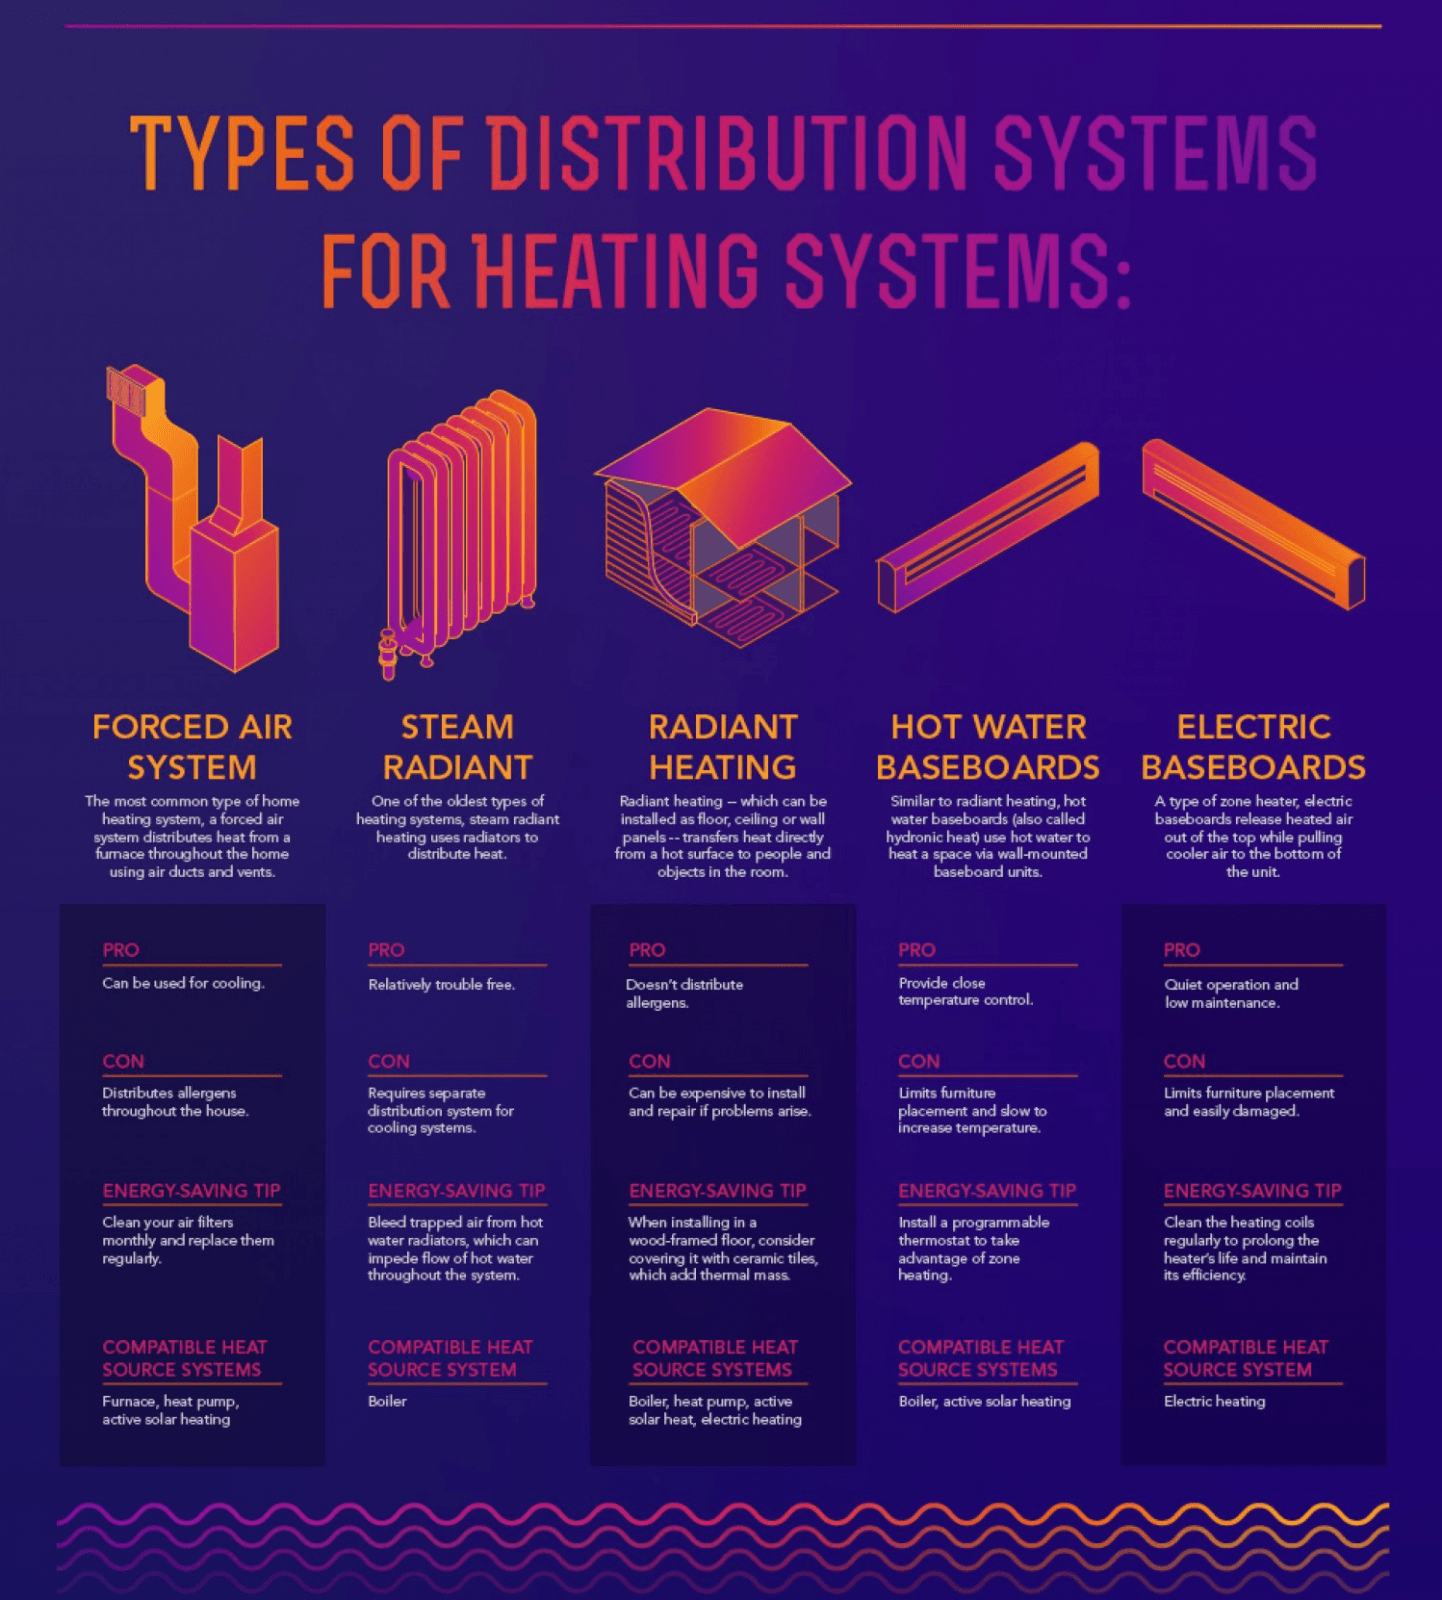 Home Heating Guide Save On Energy Bills For Electric Baseboards Furnaces Radiant Heat Types Of Distribution Systems